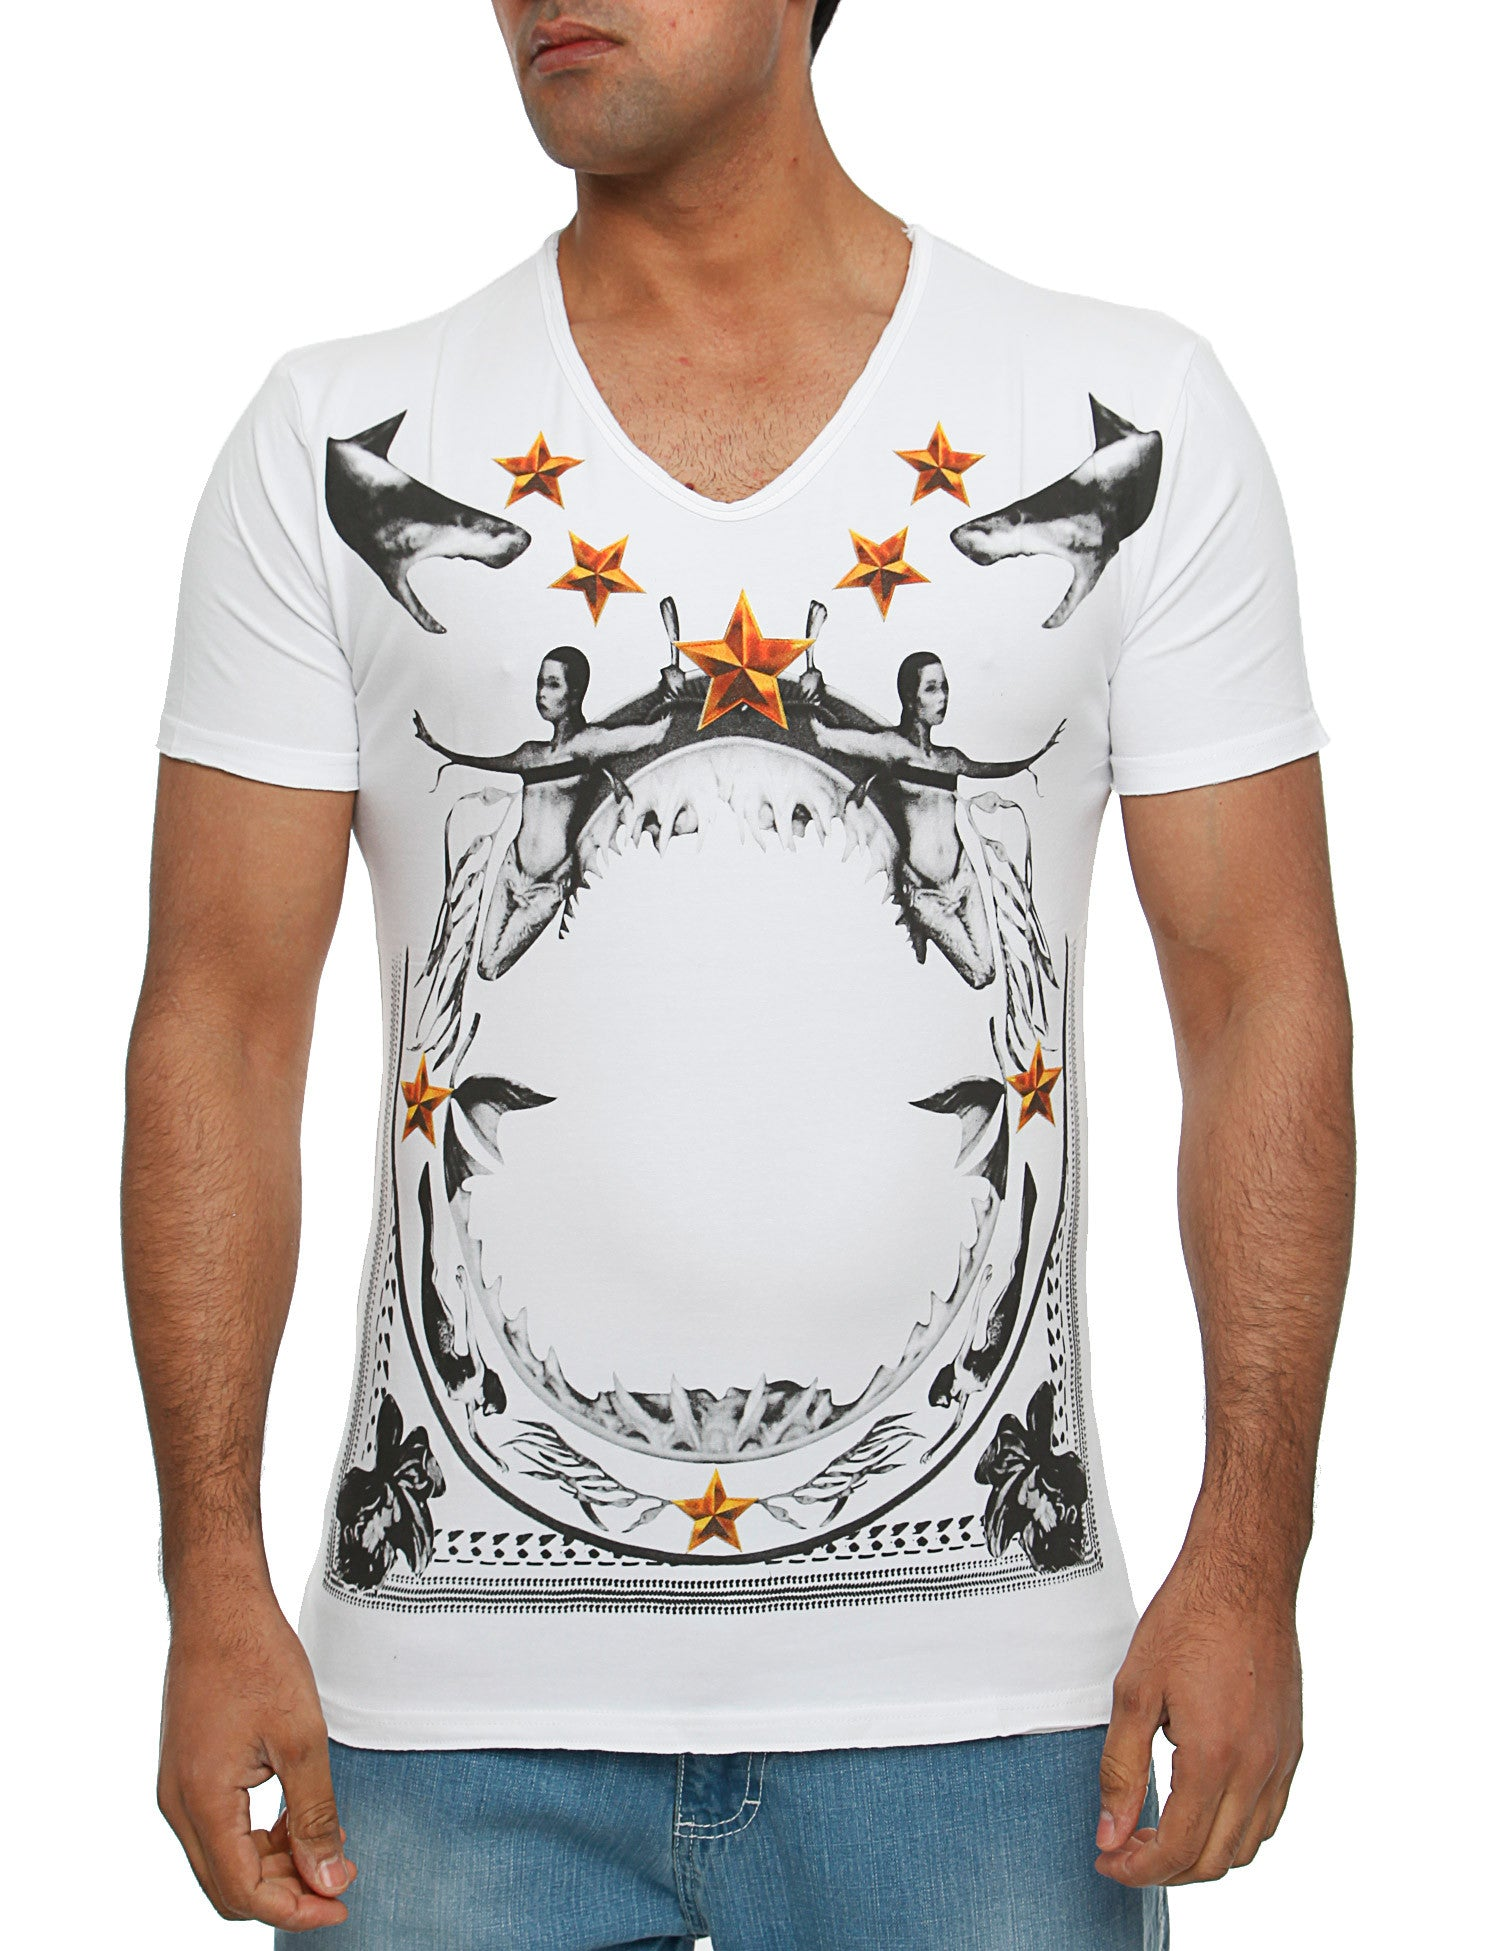 Abaris Angel Stars T-Shirt SS14-07 White